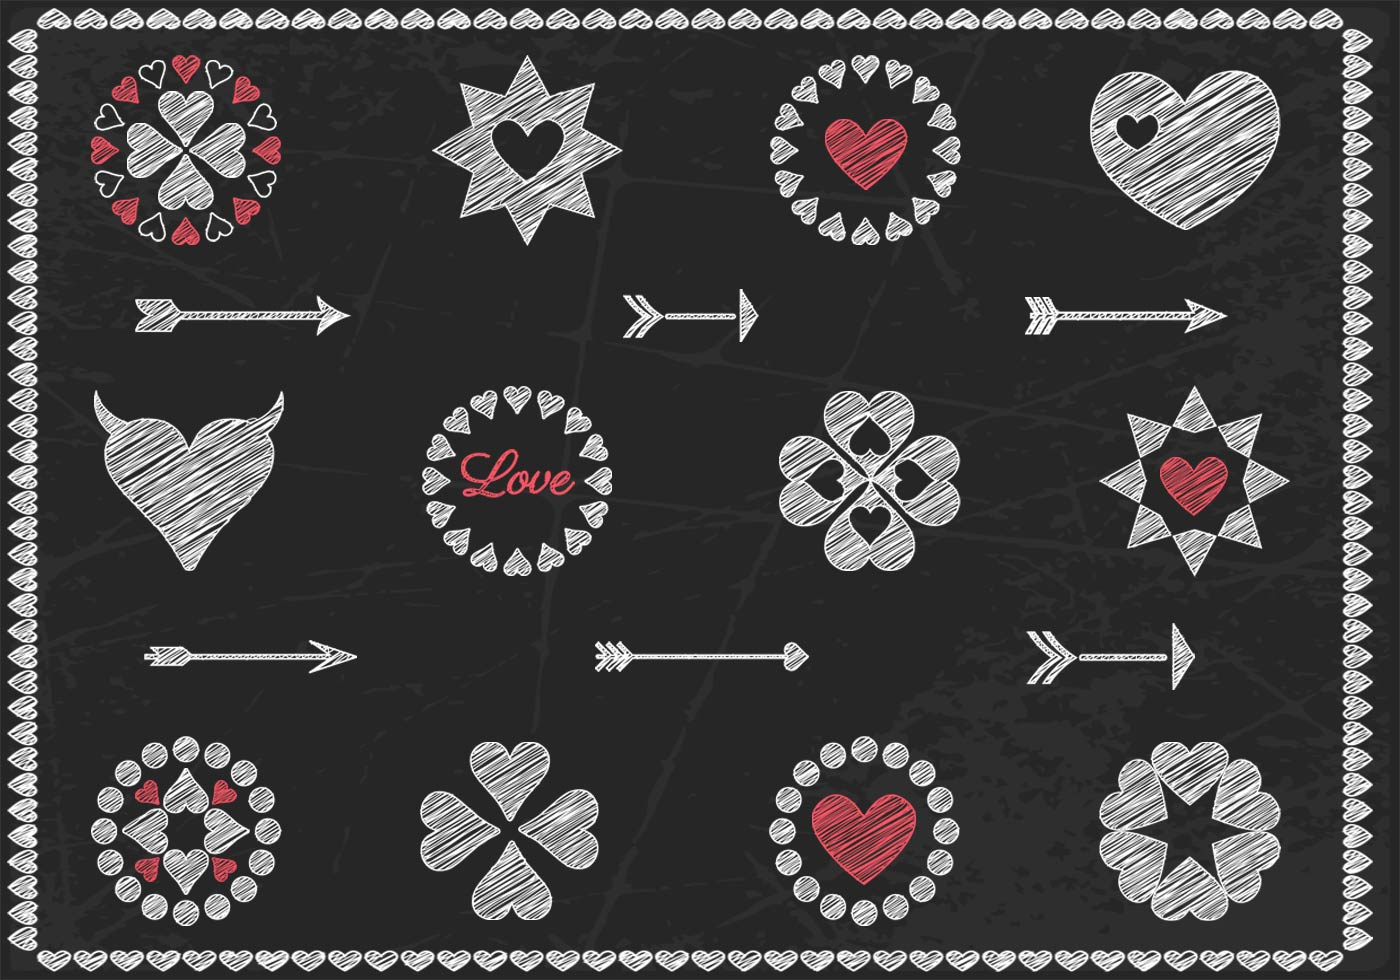 Chalk Drawn Heart Vector and Arrow Vector Pack - Download ...